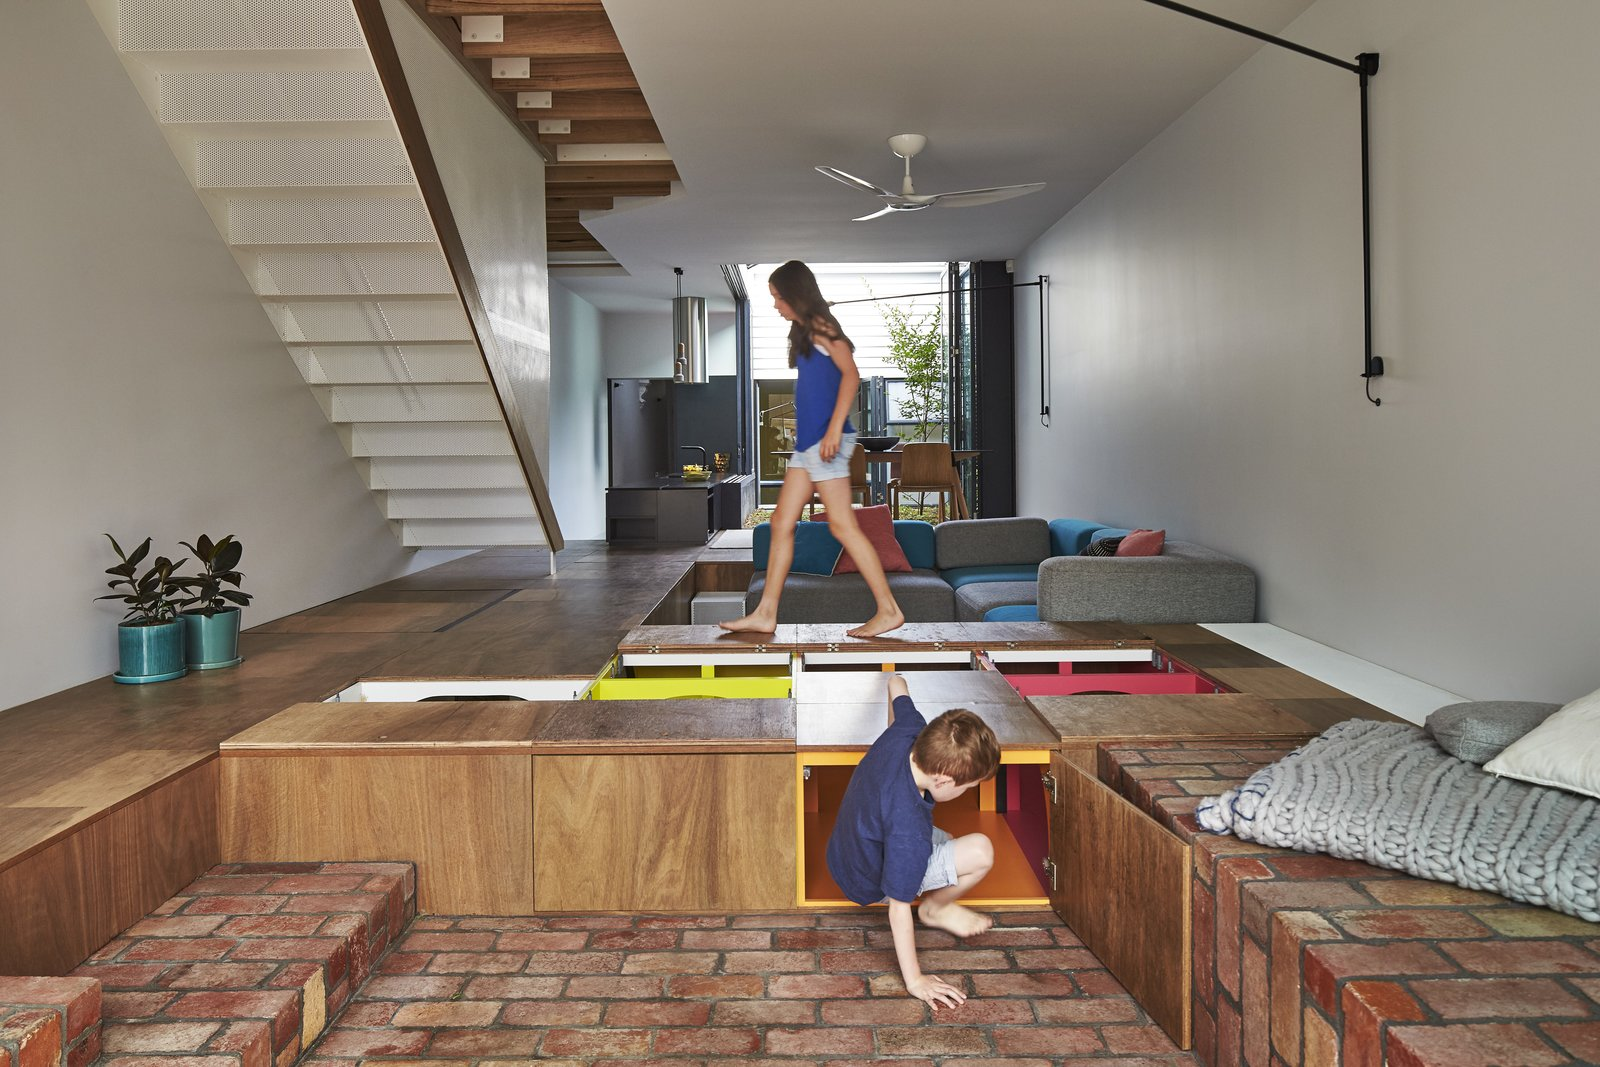 Lifestyle Koubou Stairs p 113  Photo 13 of 16 in Gestalten's New Book Shows How to Transform Small Spaces Into Design Marvels